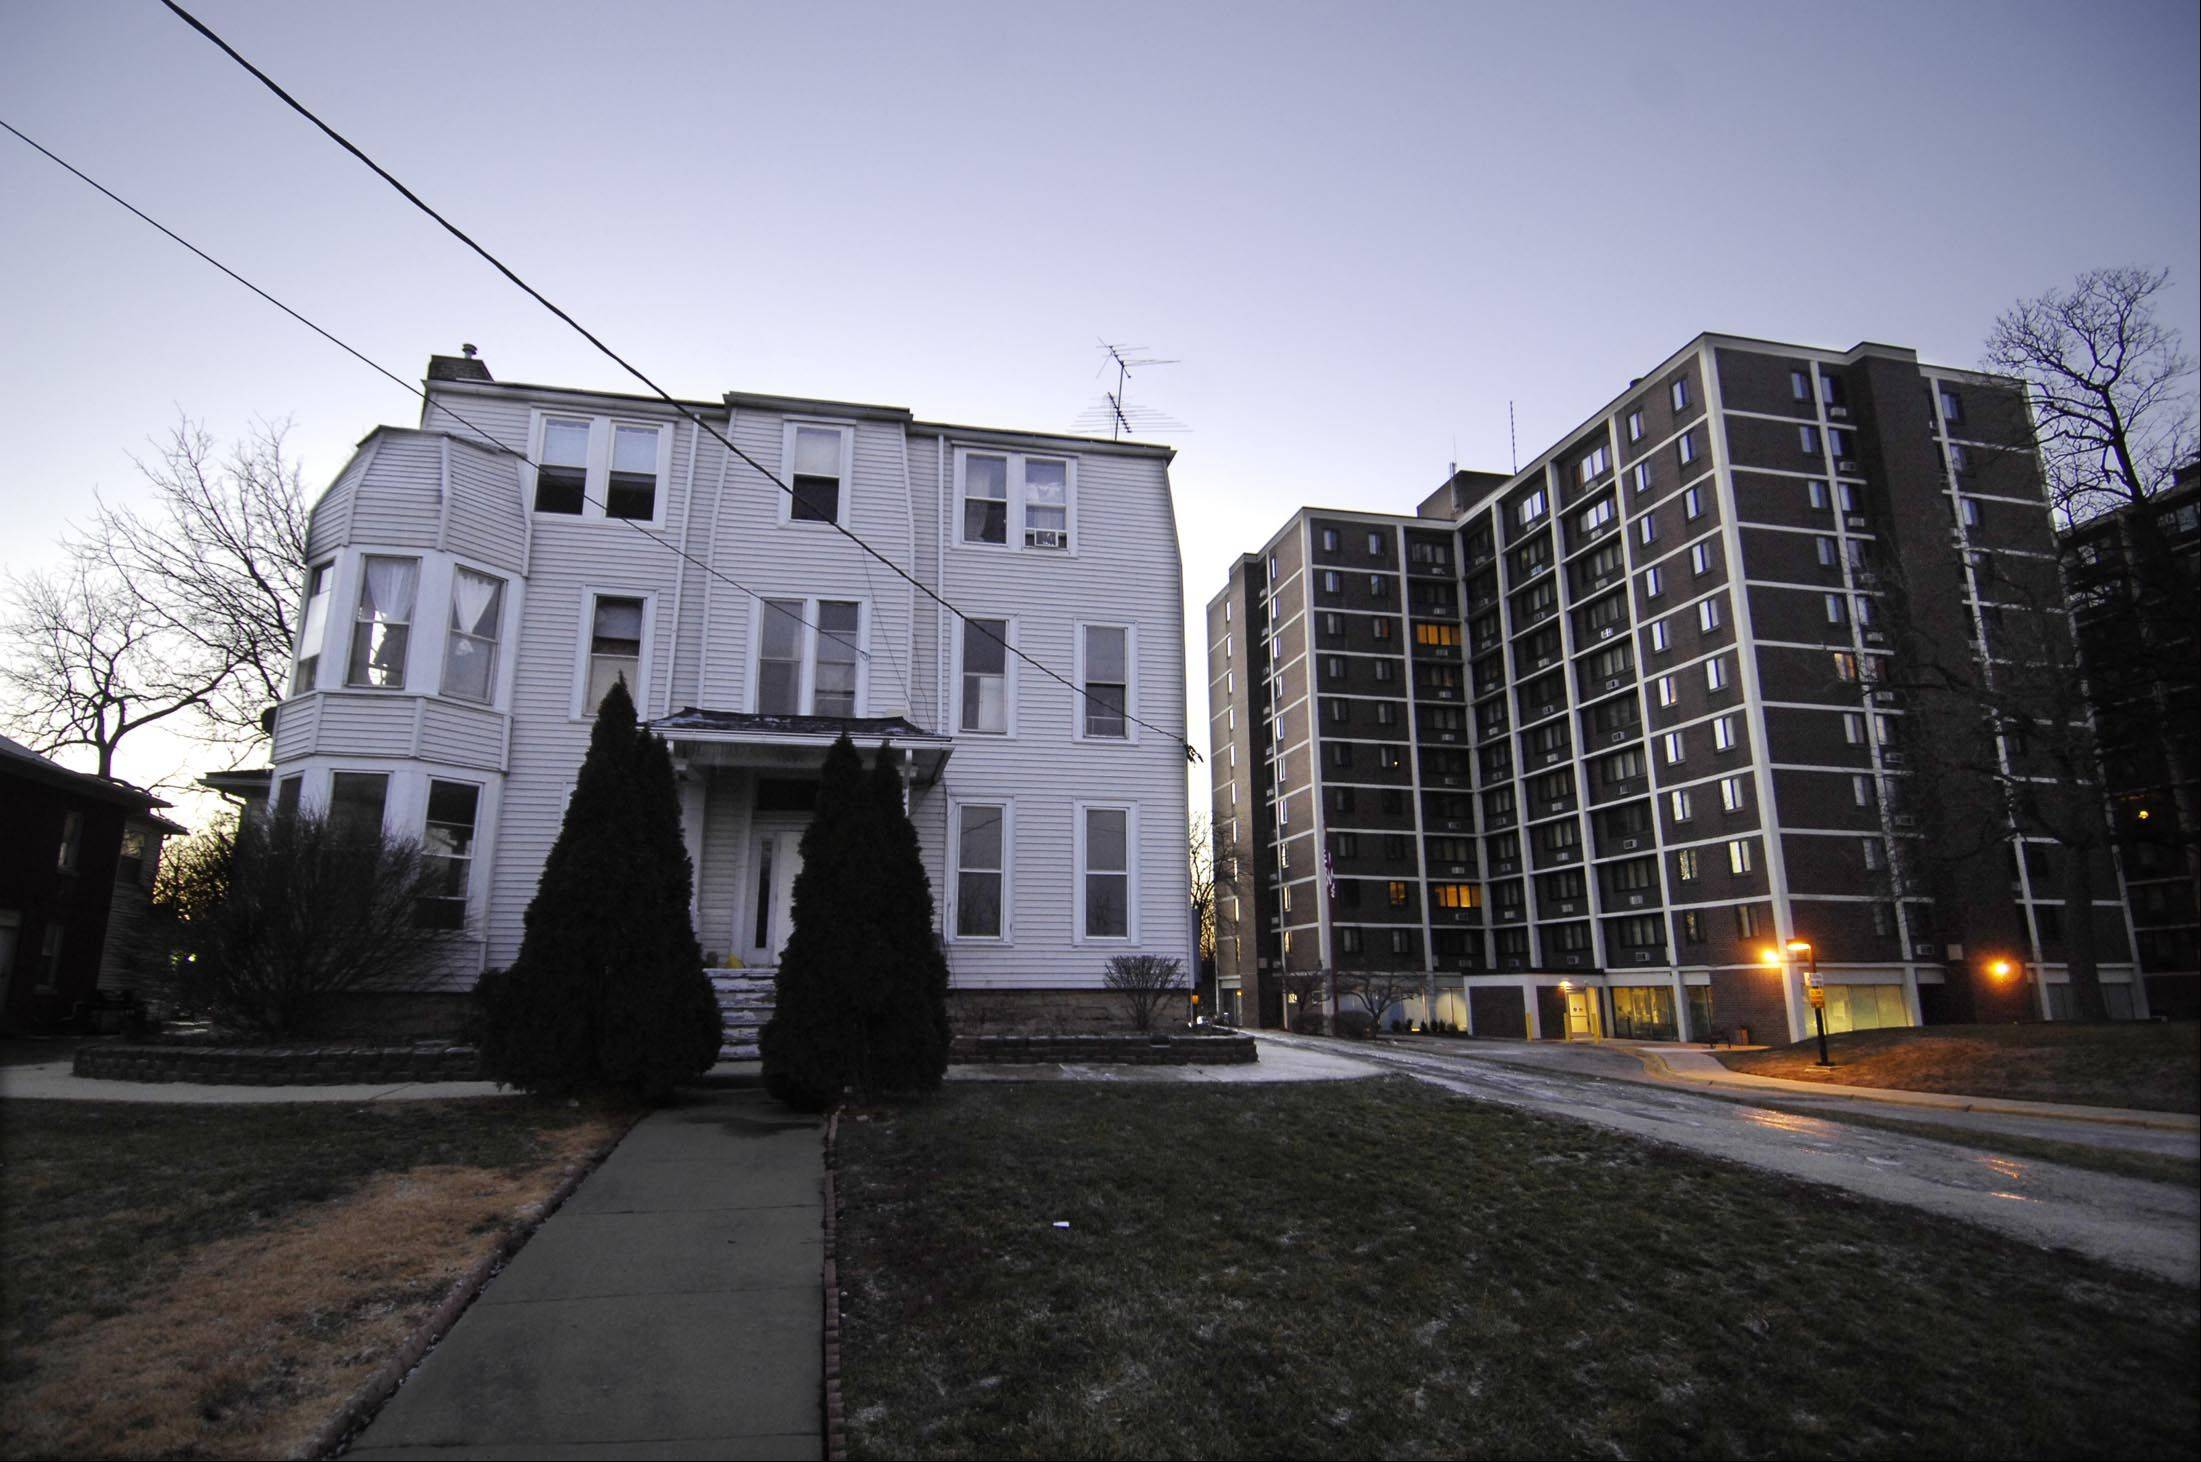 The Elgin Housing Authority expects to receive $7.5 million in federal funds to rehab Central Park Towers at 120 S. State St. in Elgin. The EHA also owns the building next door and wants demolish it to build another apartment building, if possible.